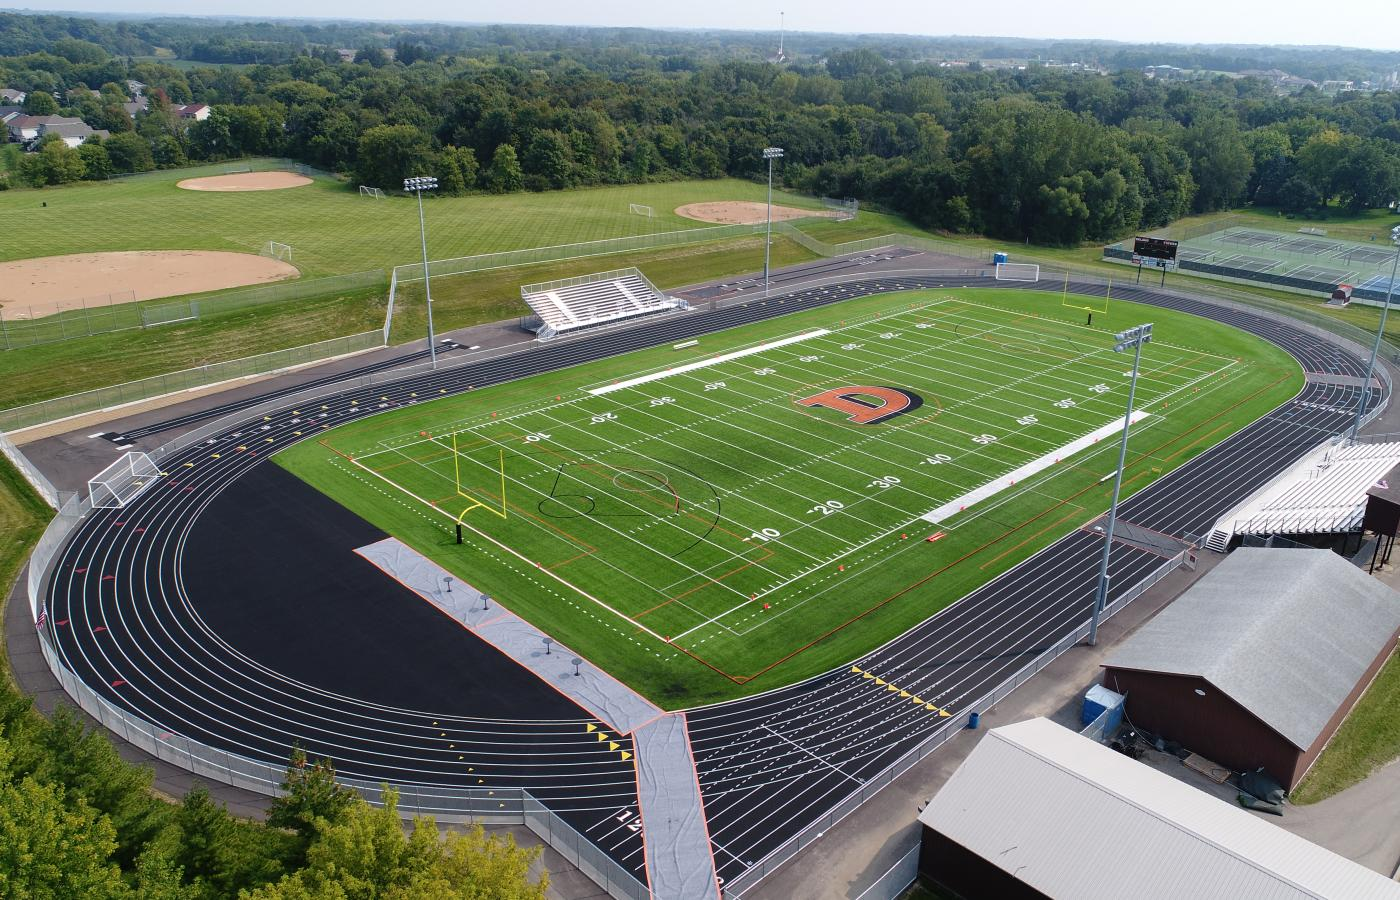 Delano High School Synthetic Turf Fields - 1